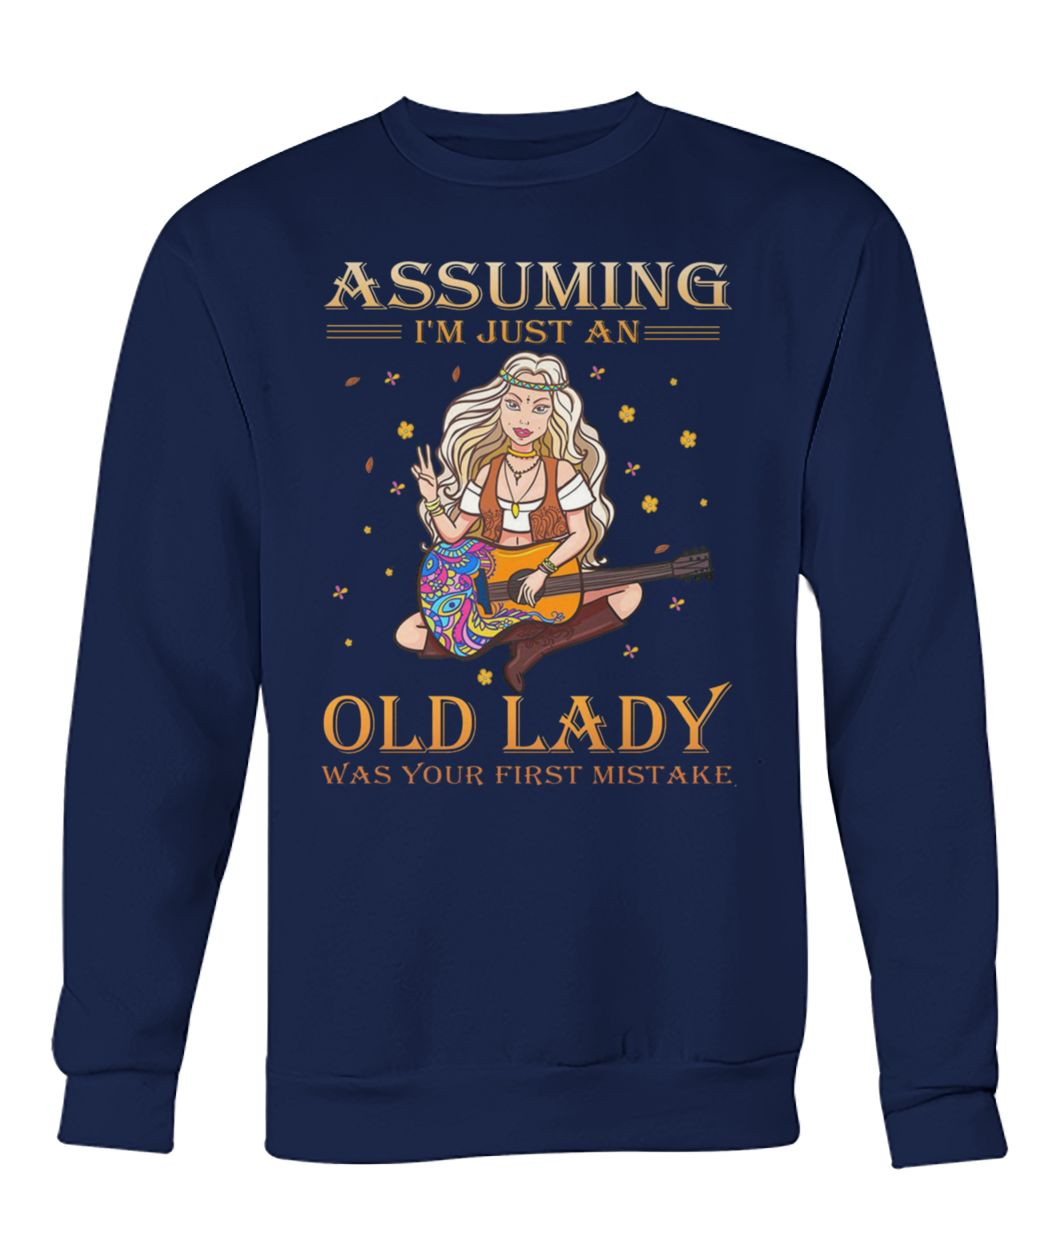 Best design Hippie style assuming I'm just an old lady was your first mistake shirt